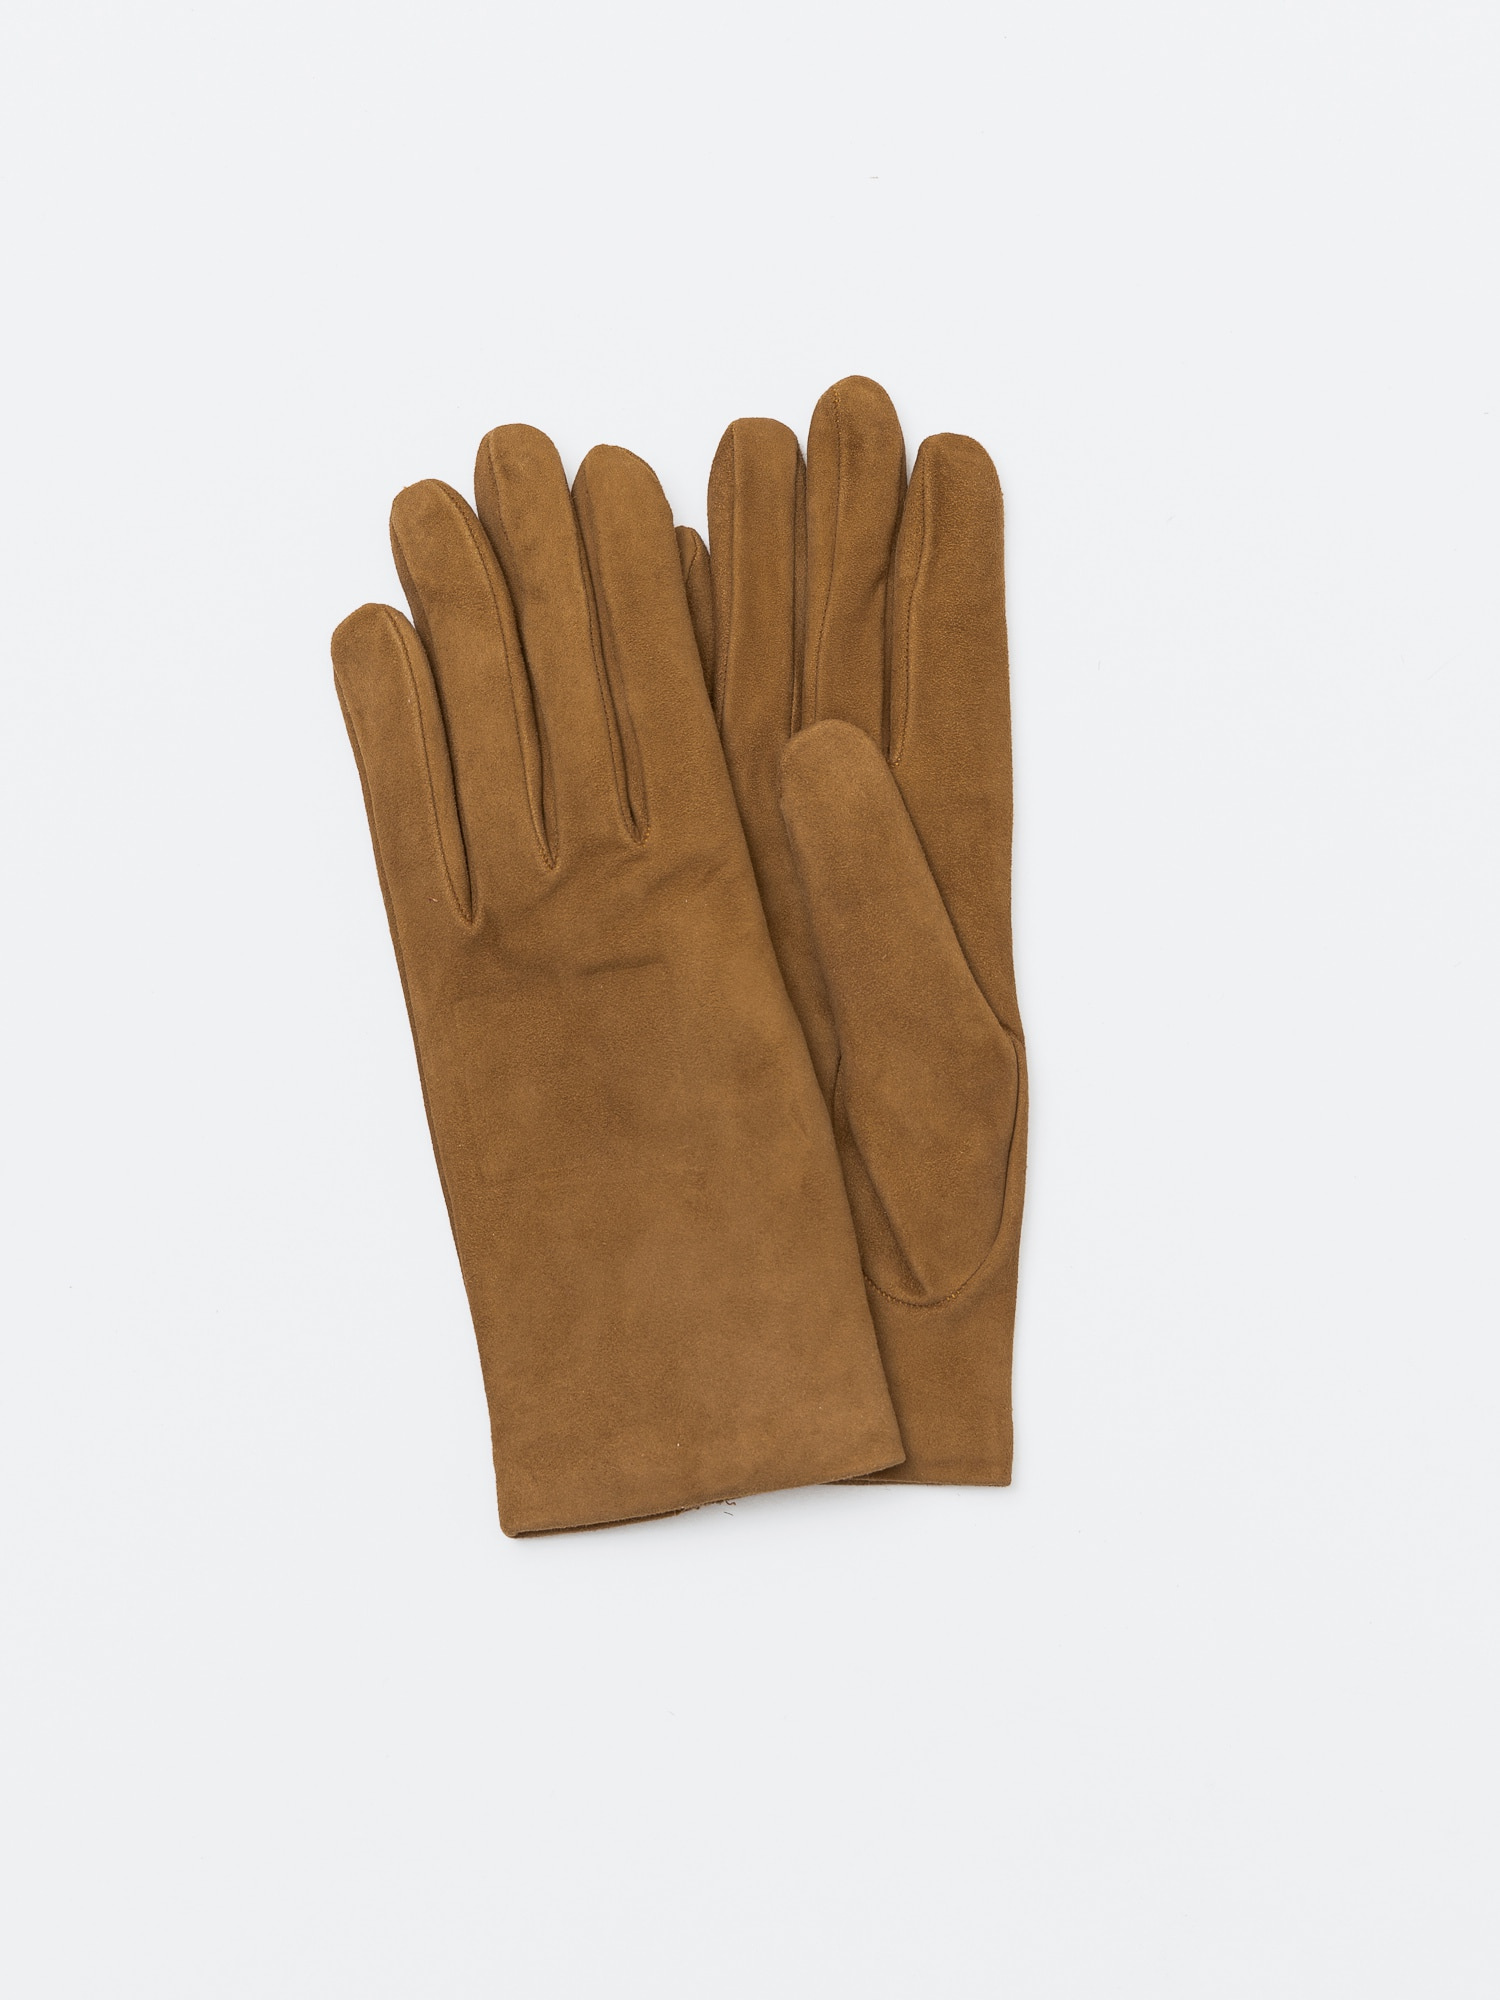 Omega gloves Nappa Beige Suede (Woman)오메가글러브